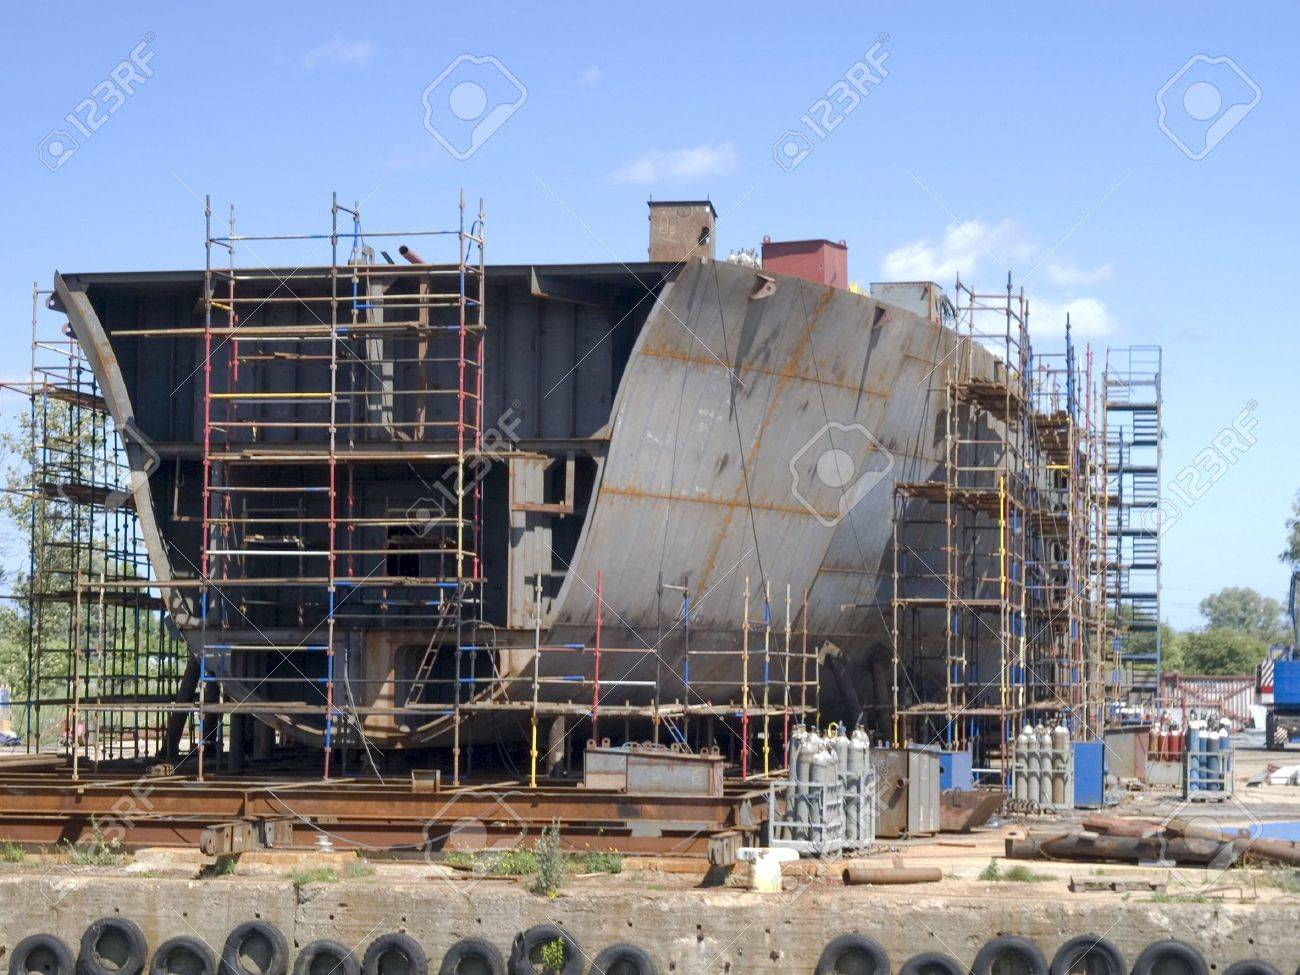 Hull during contruction works Stock Photo - 7749790